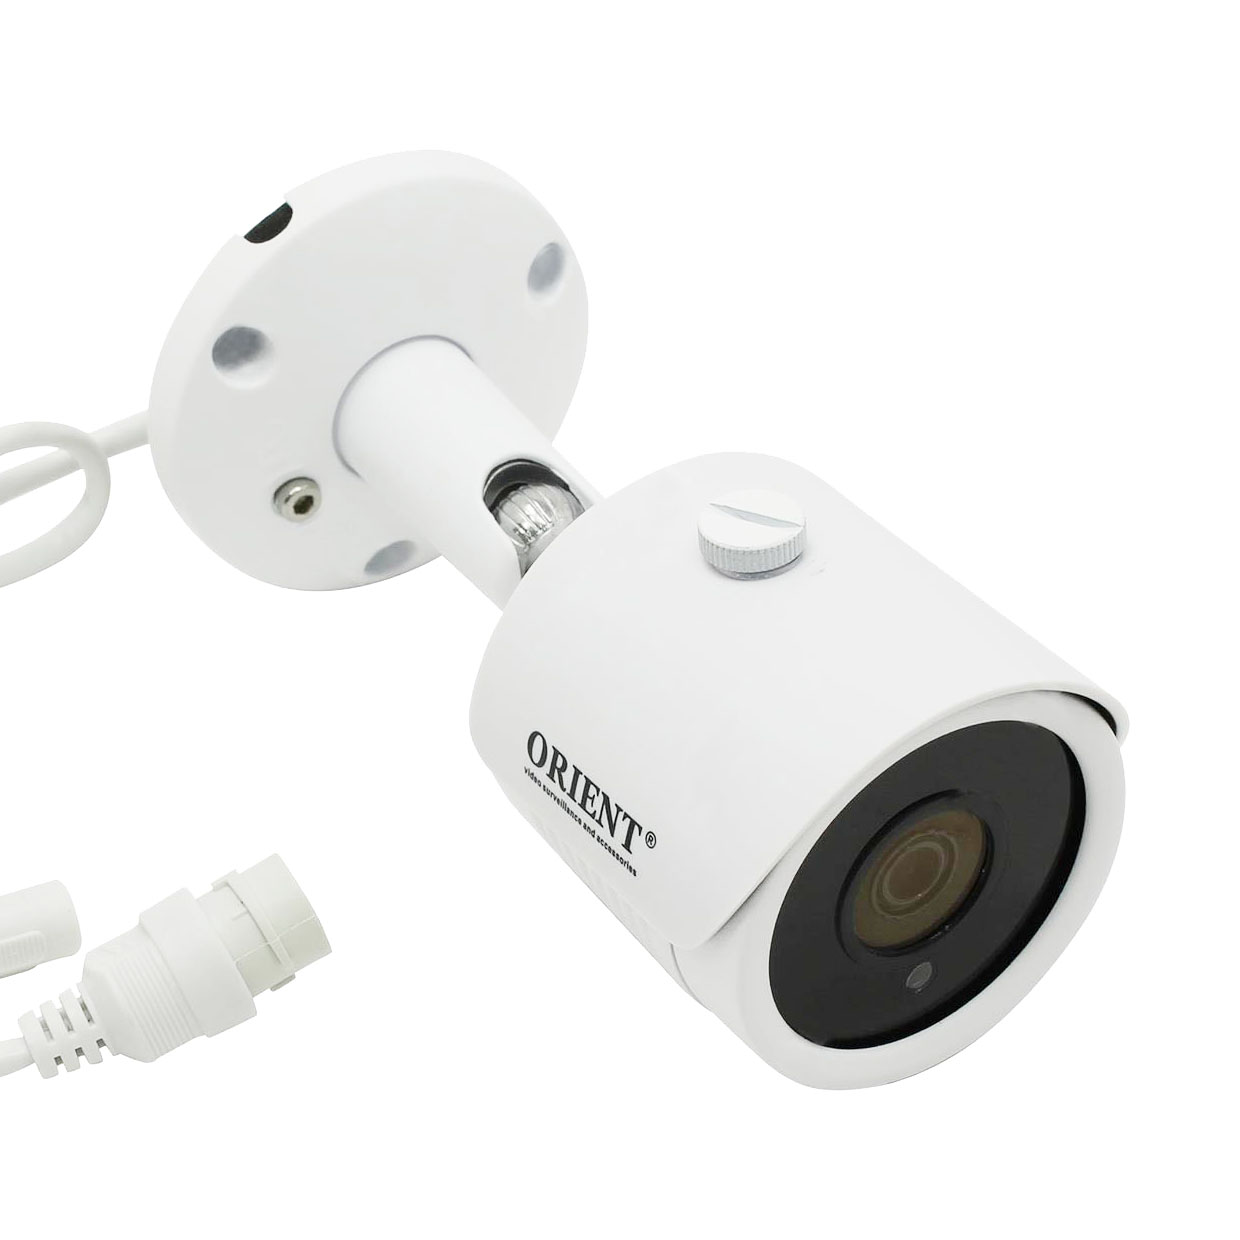 "IP-камера ORIENT IP-33-OH40APSD MIC, (H.265/H.264). 1/3"" OV4689 + Hi3516D, WDR; With IR-CUT;Including Internal POE and SD Card SlotMain Stream: 4MP@20fps, 3MP/1080P@30fps; 4MP HD Lens. 2,8mm lens. IR30M. Встроенный микрофон"